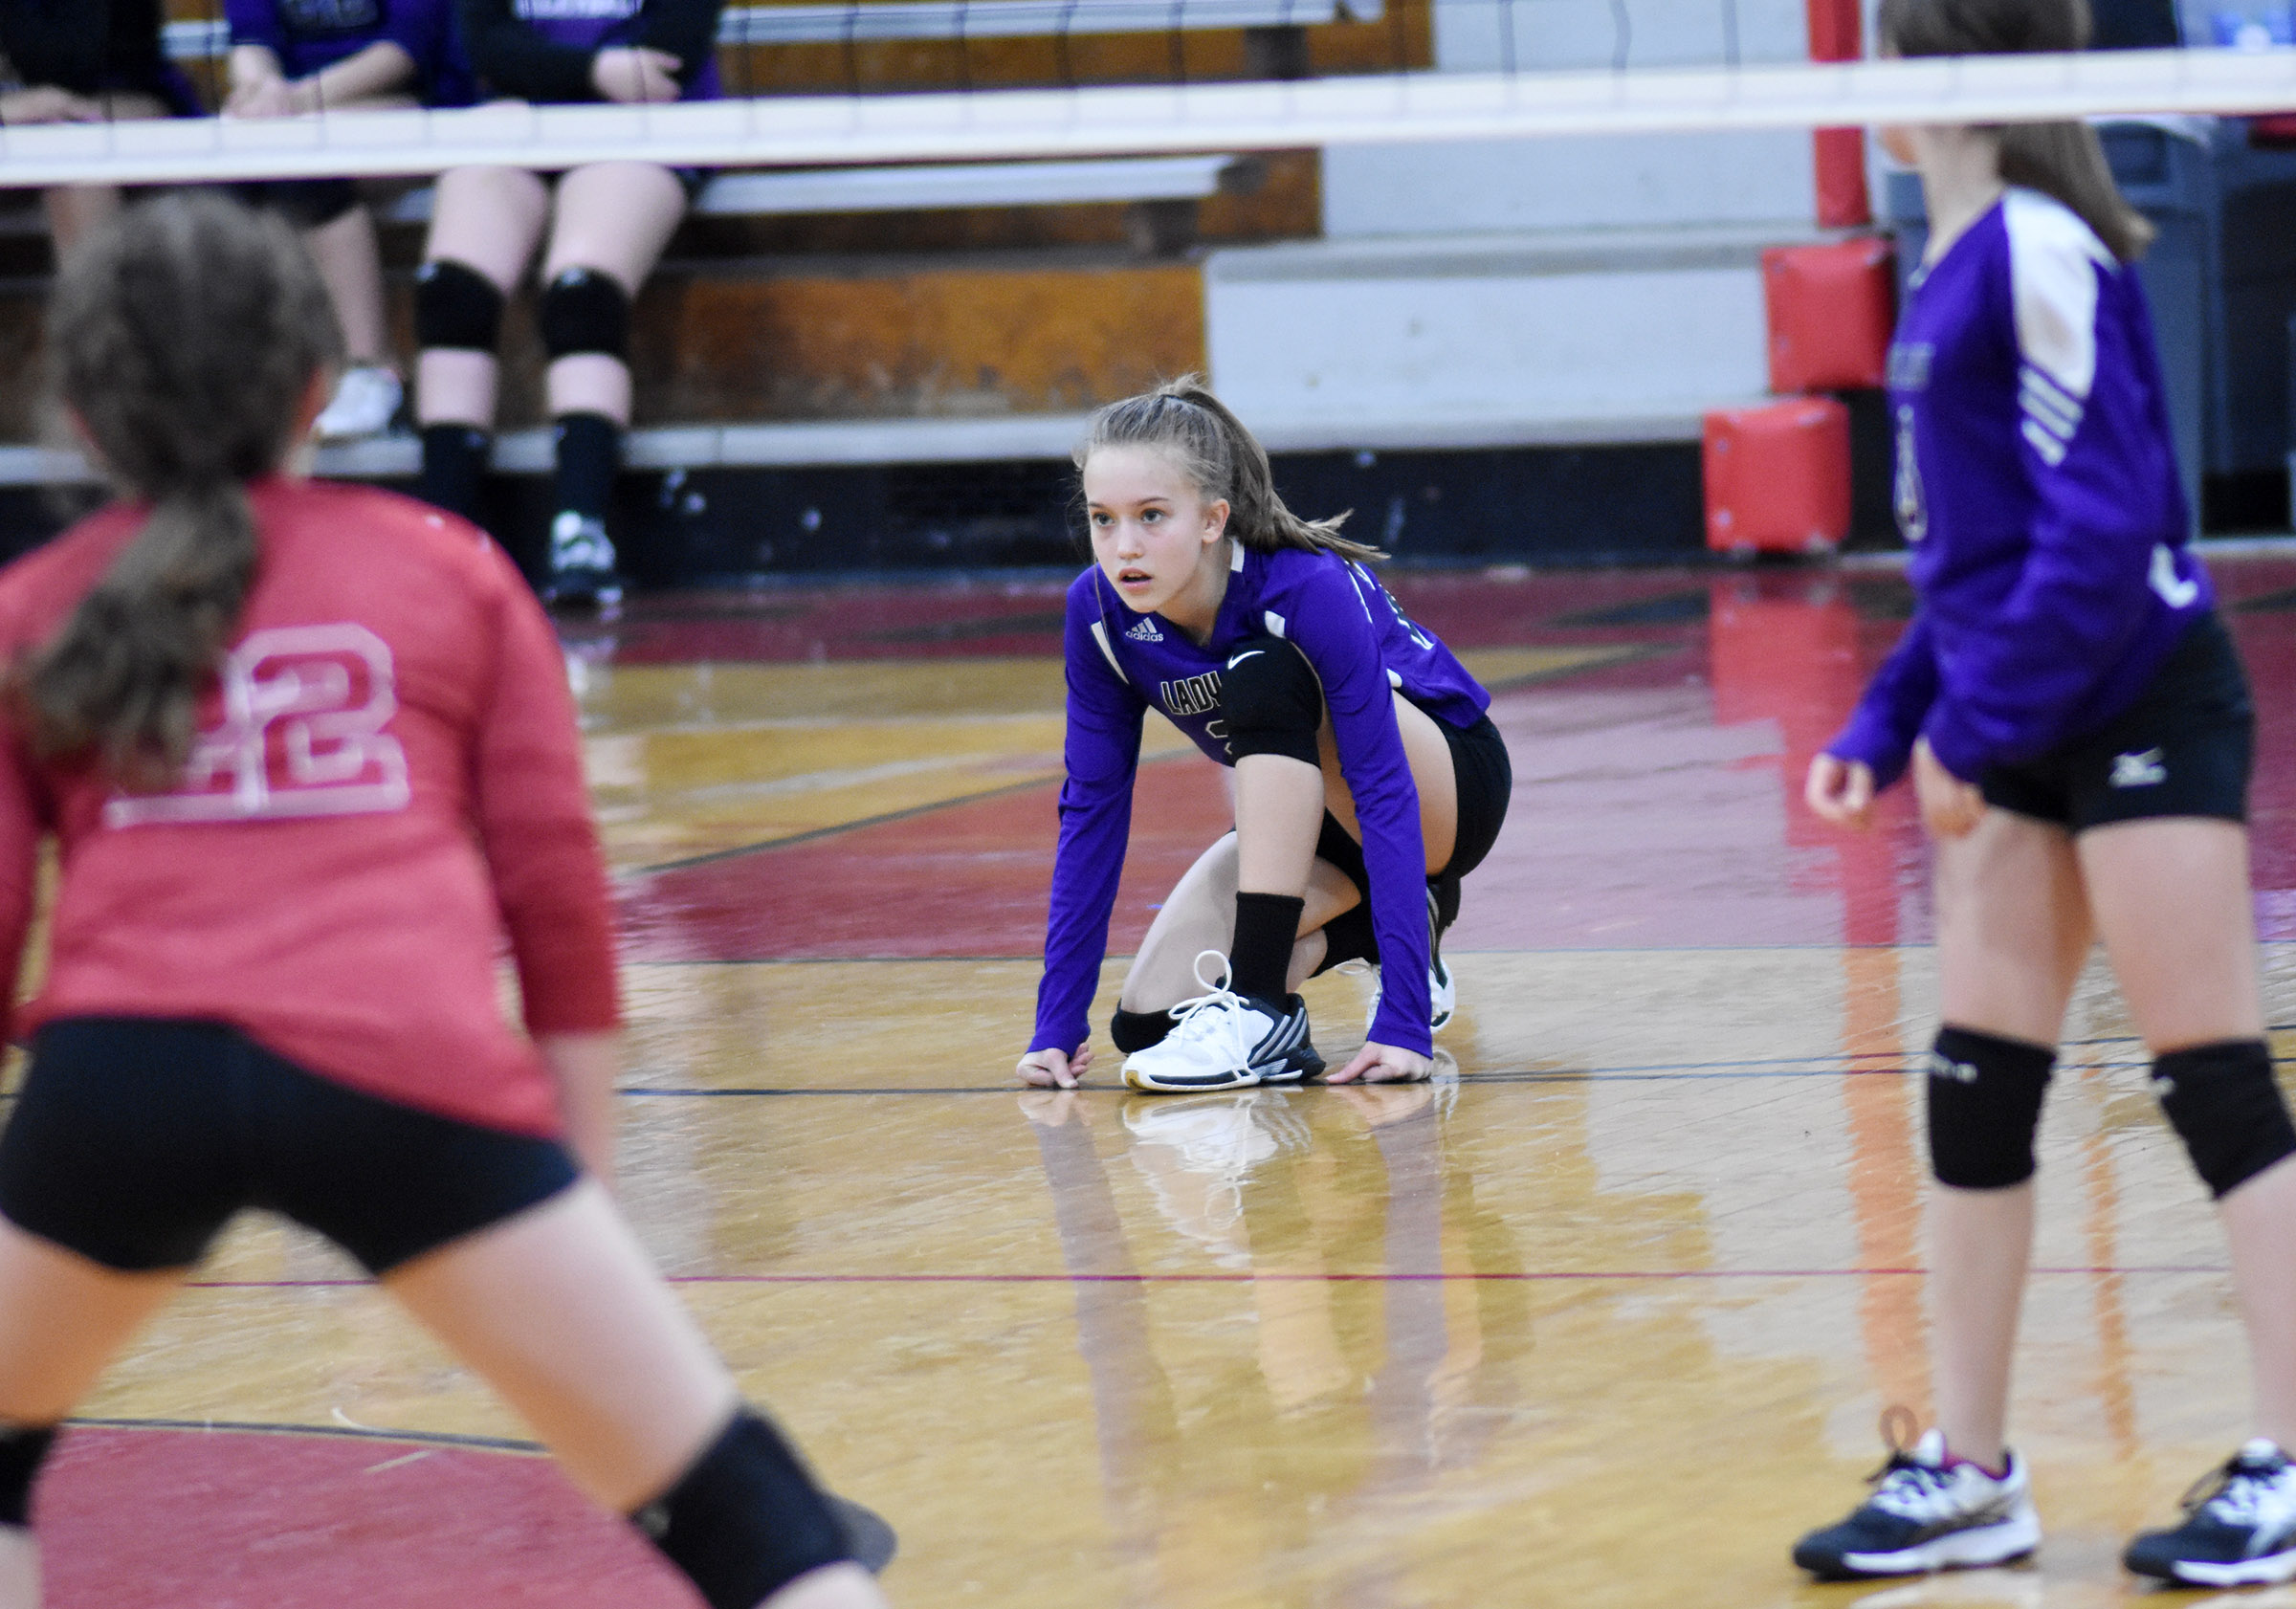 CMS sixth-grader Chloe Thompson watches the ball.